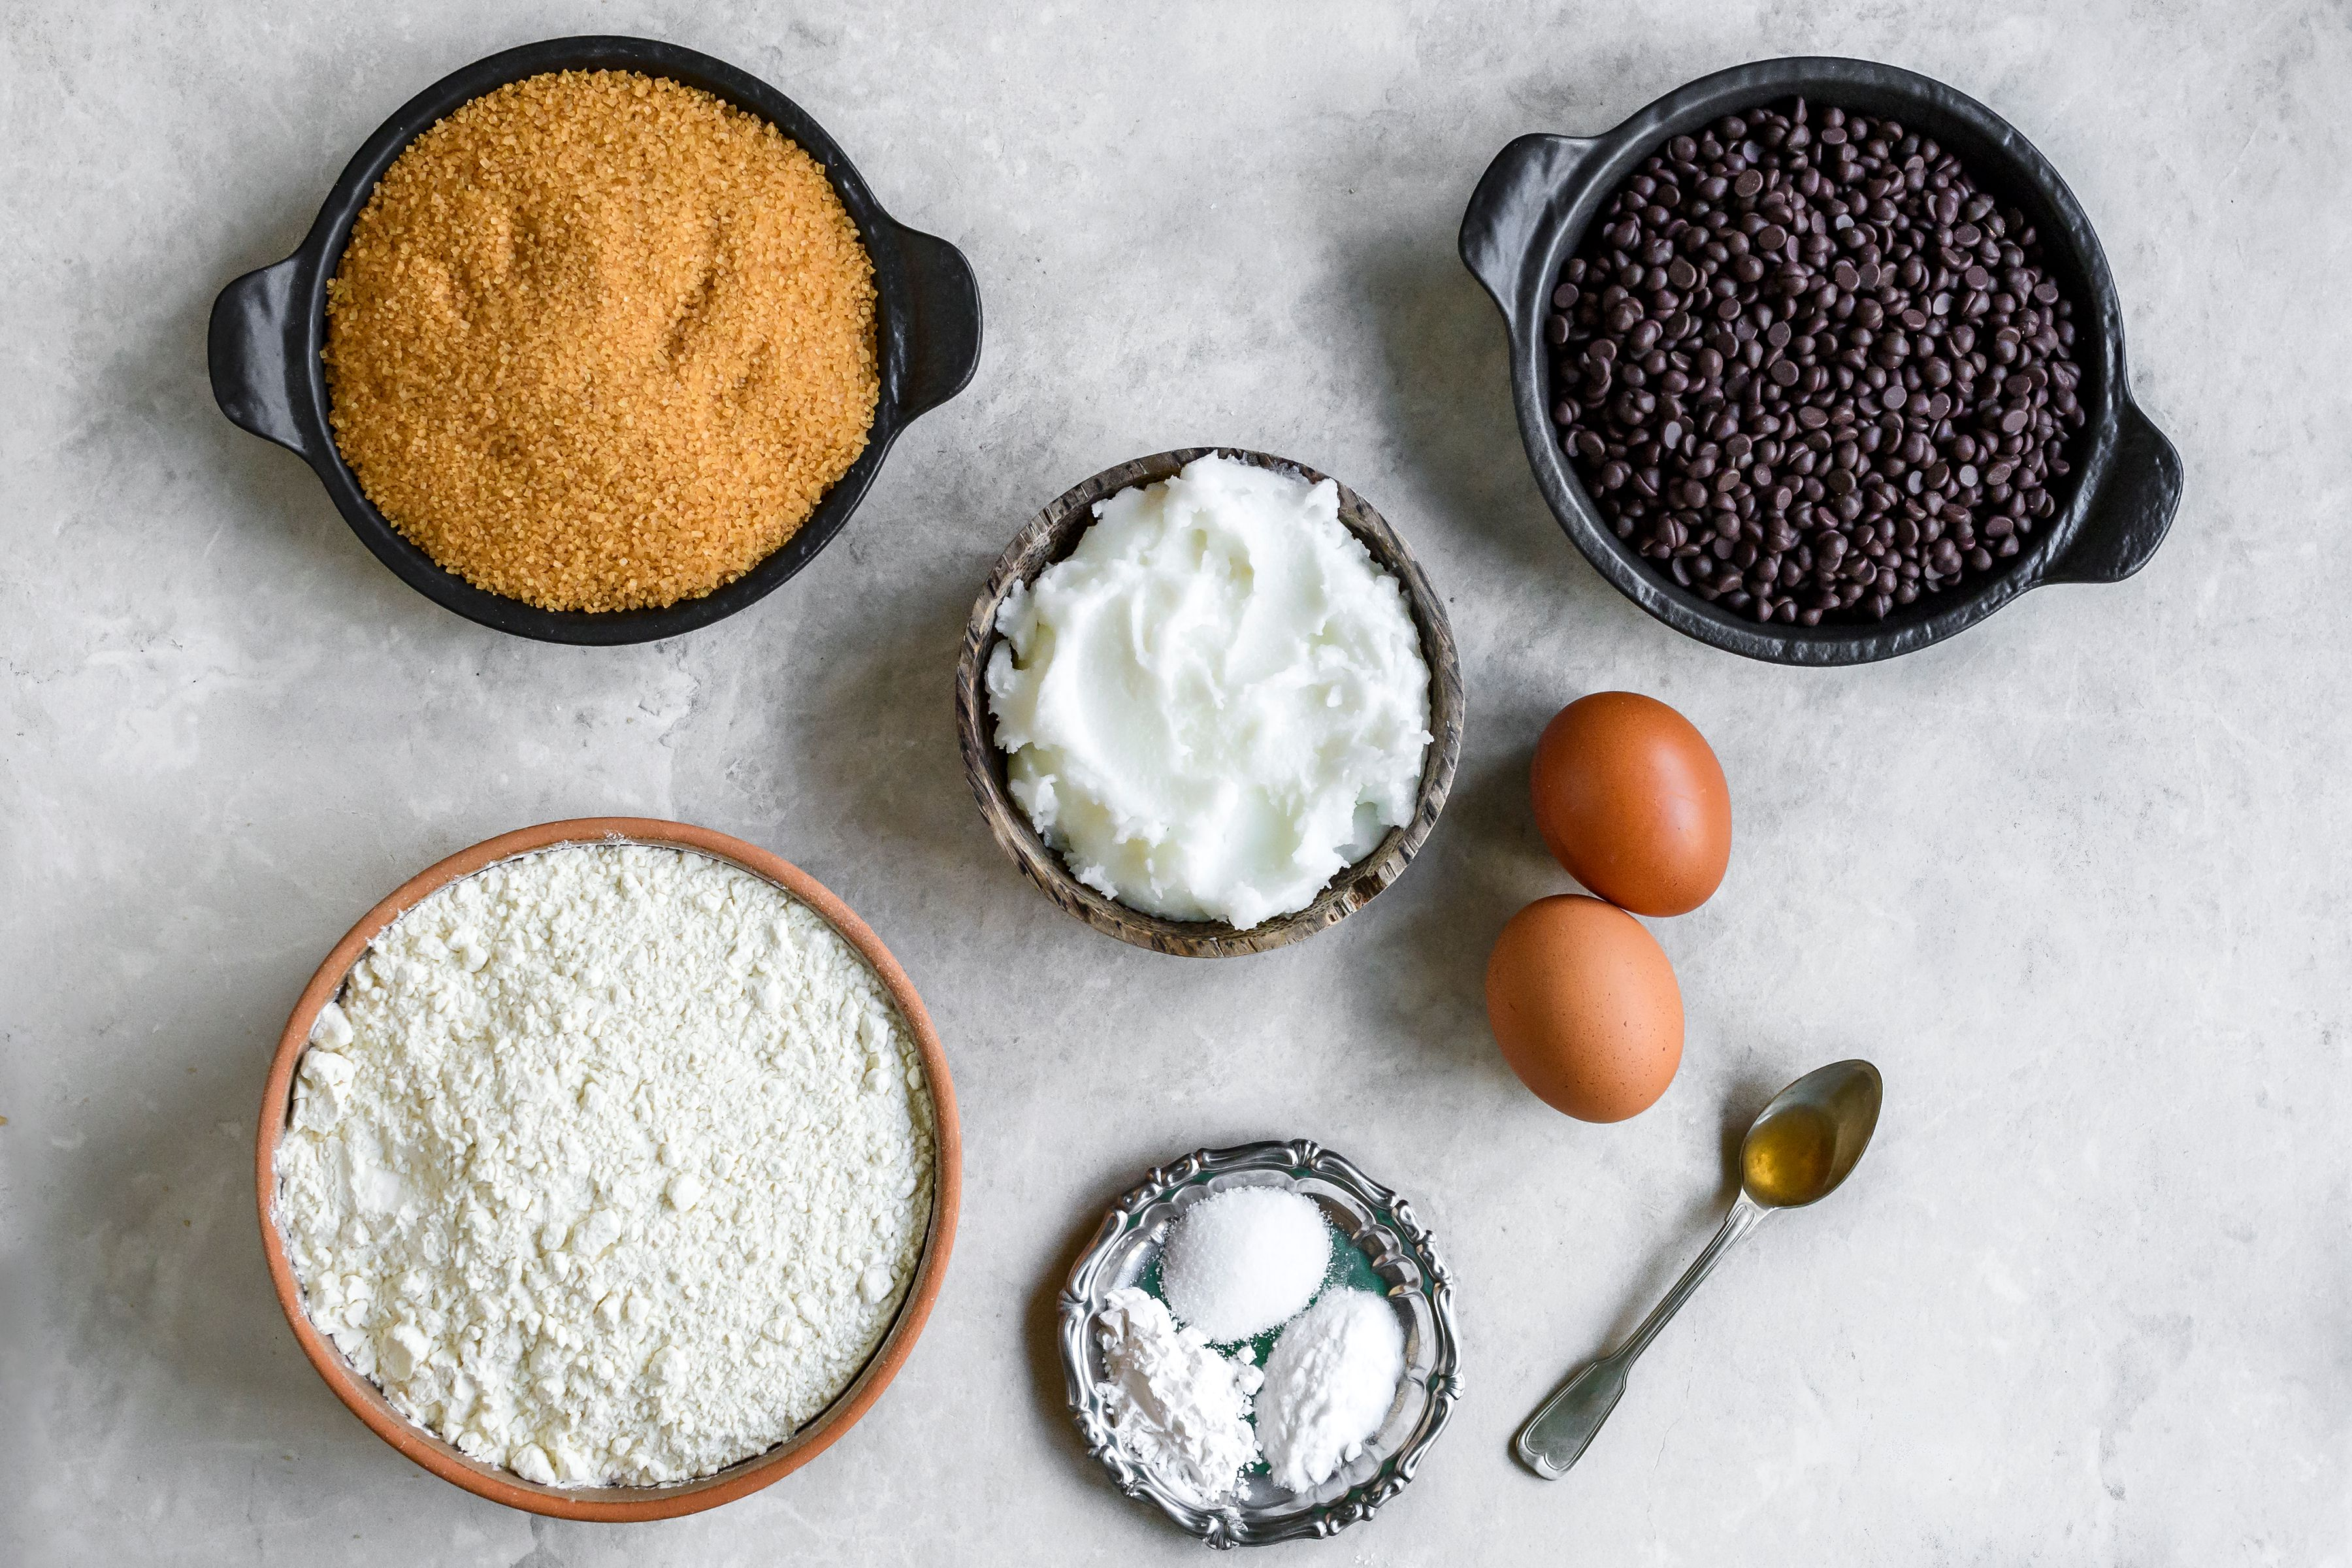 Ingredients for dairy free chocolate chips